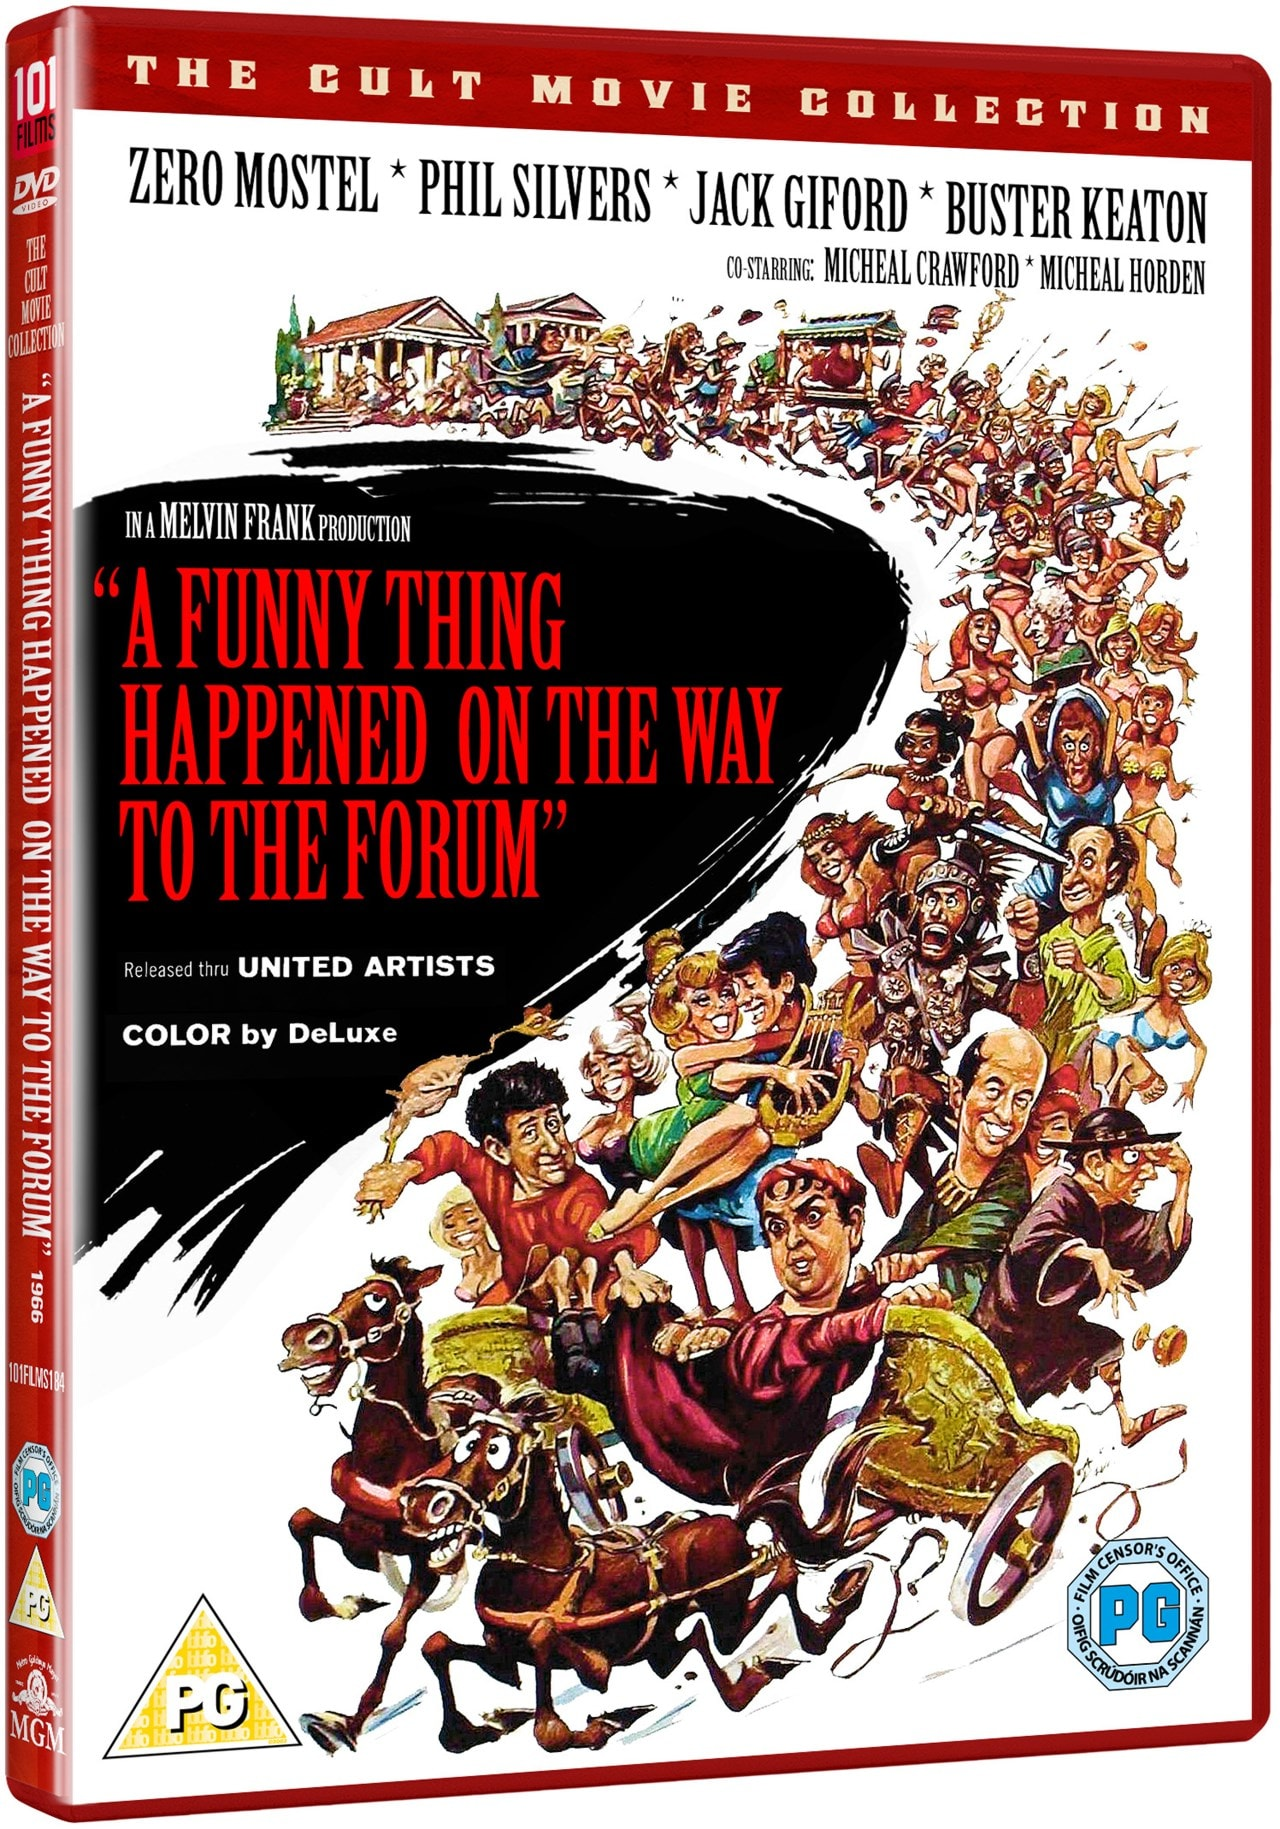 A Funny Thing Happened On the Way to the Forum - 2